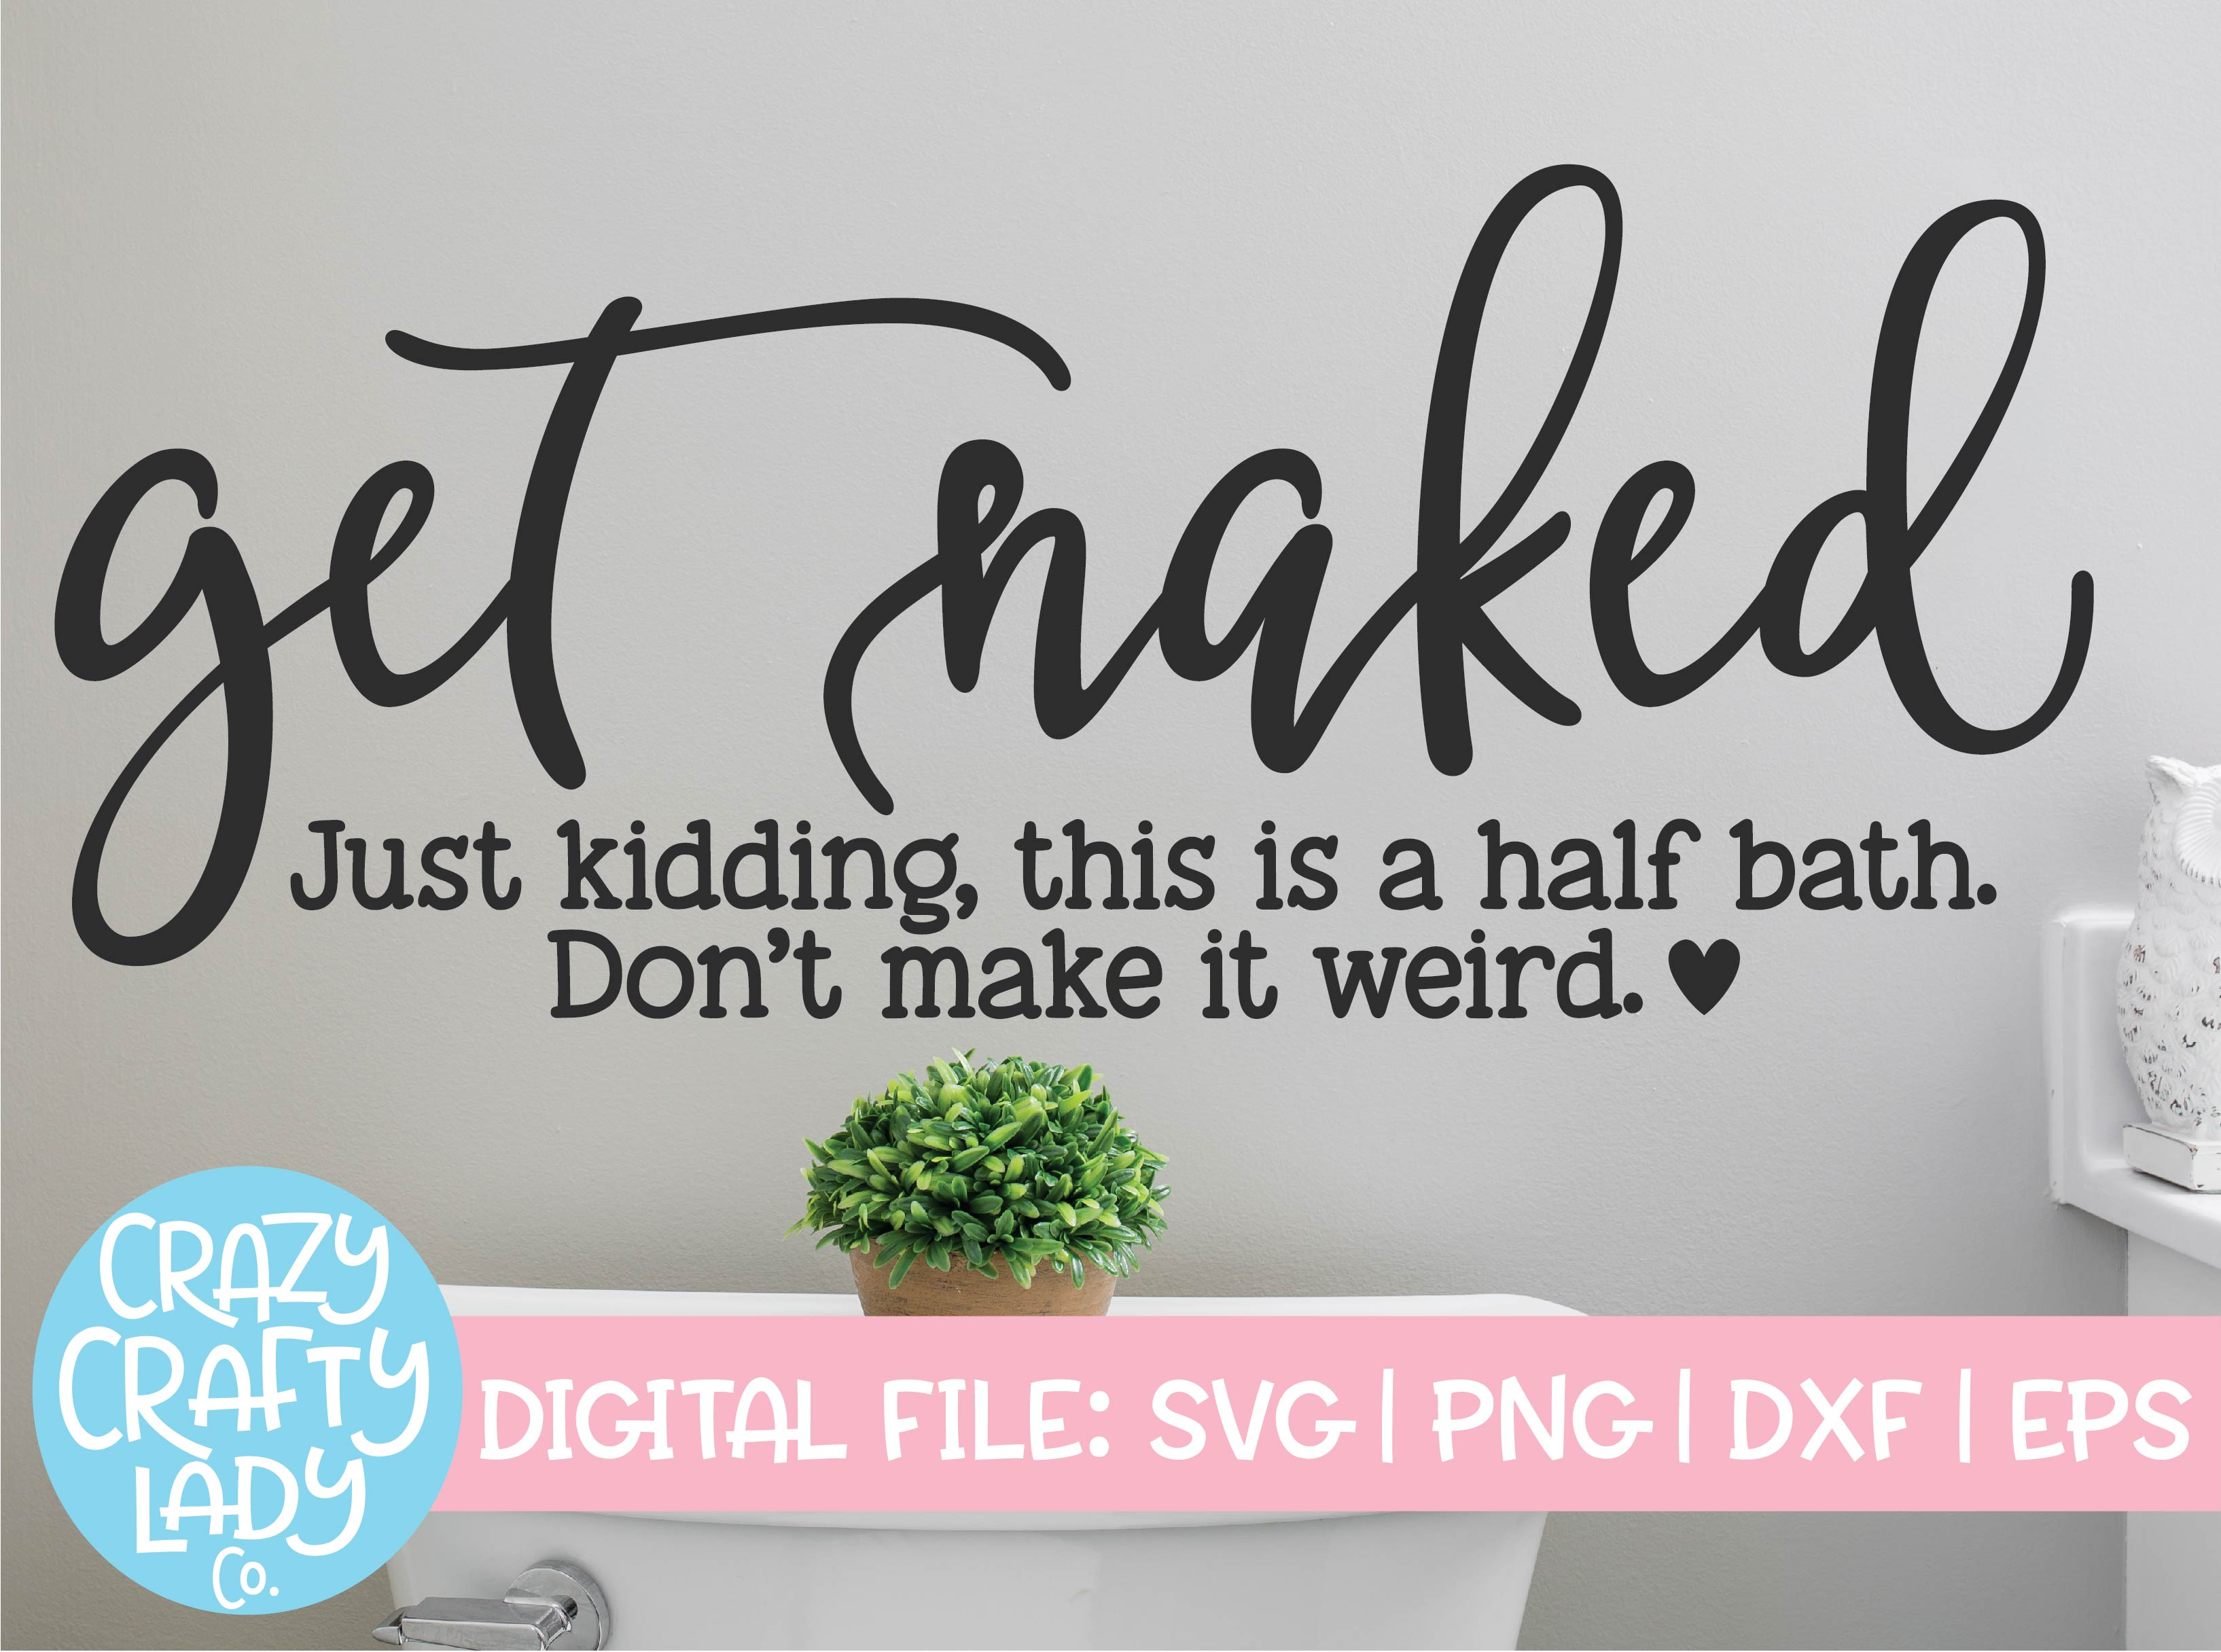 Get Naked Just Kidding This Is A Half Bath Svg Cut File Crazy Crafty Lady Co